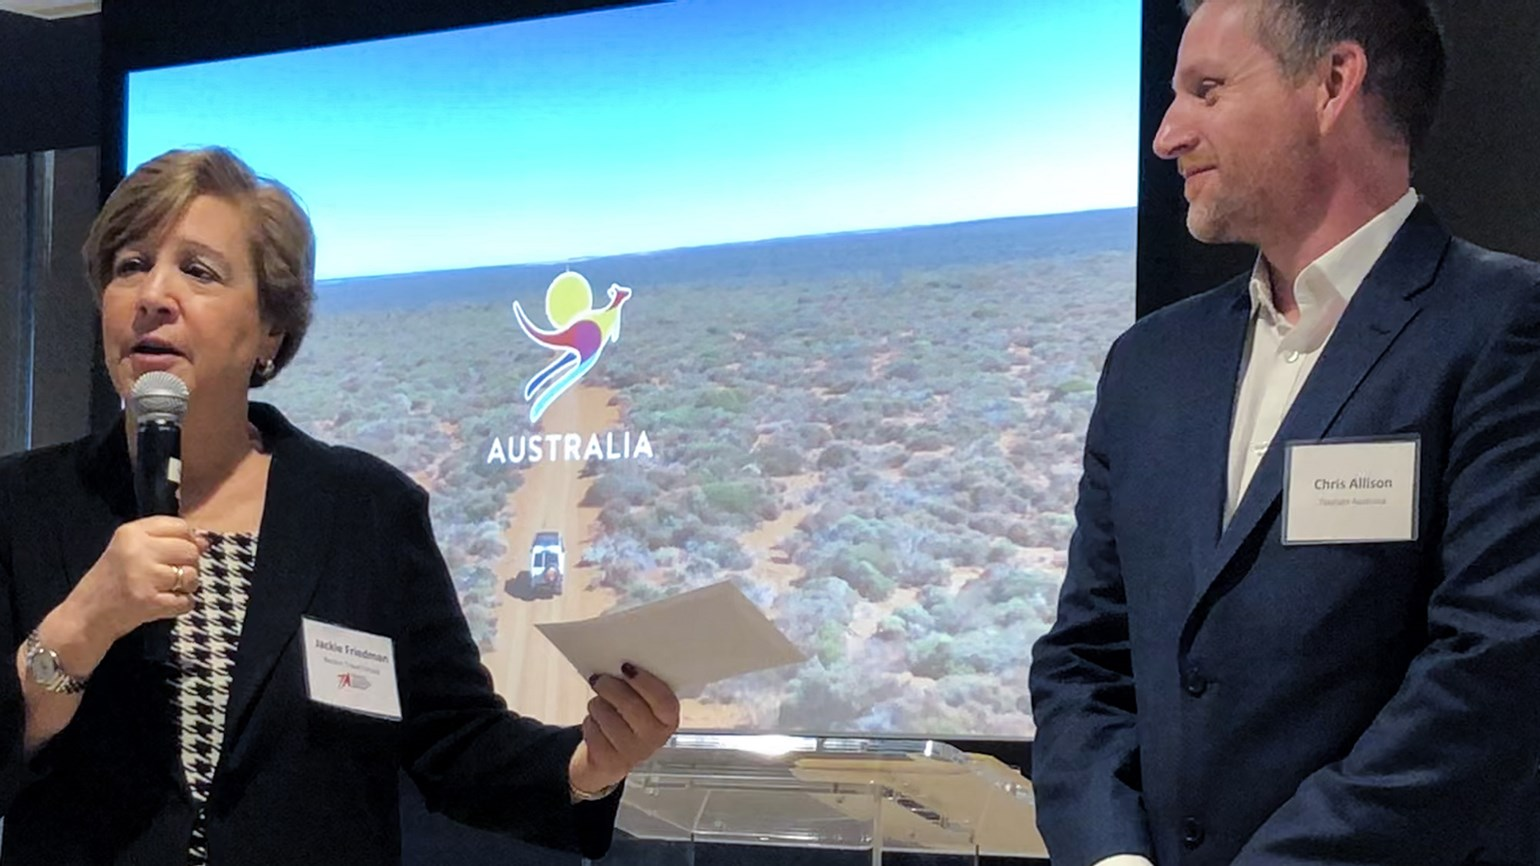 Australia tourism reaches out to U.S. during bushfire crisis